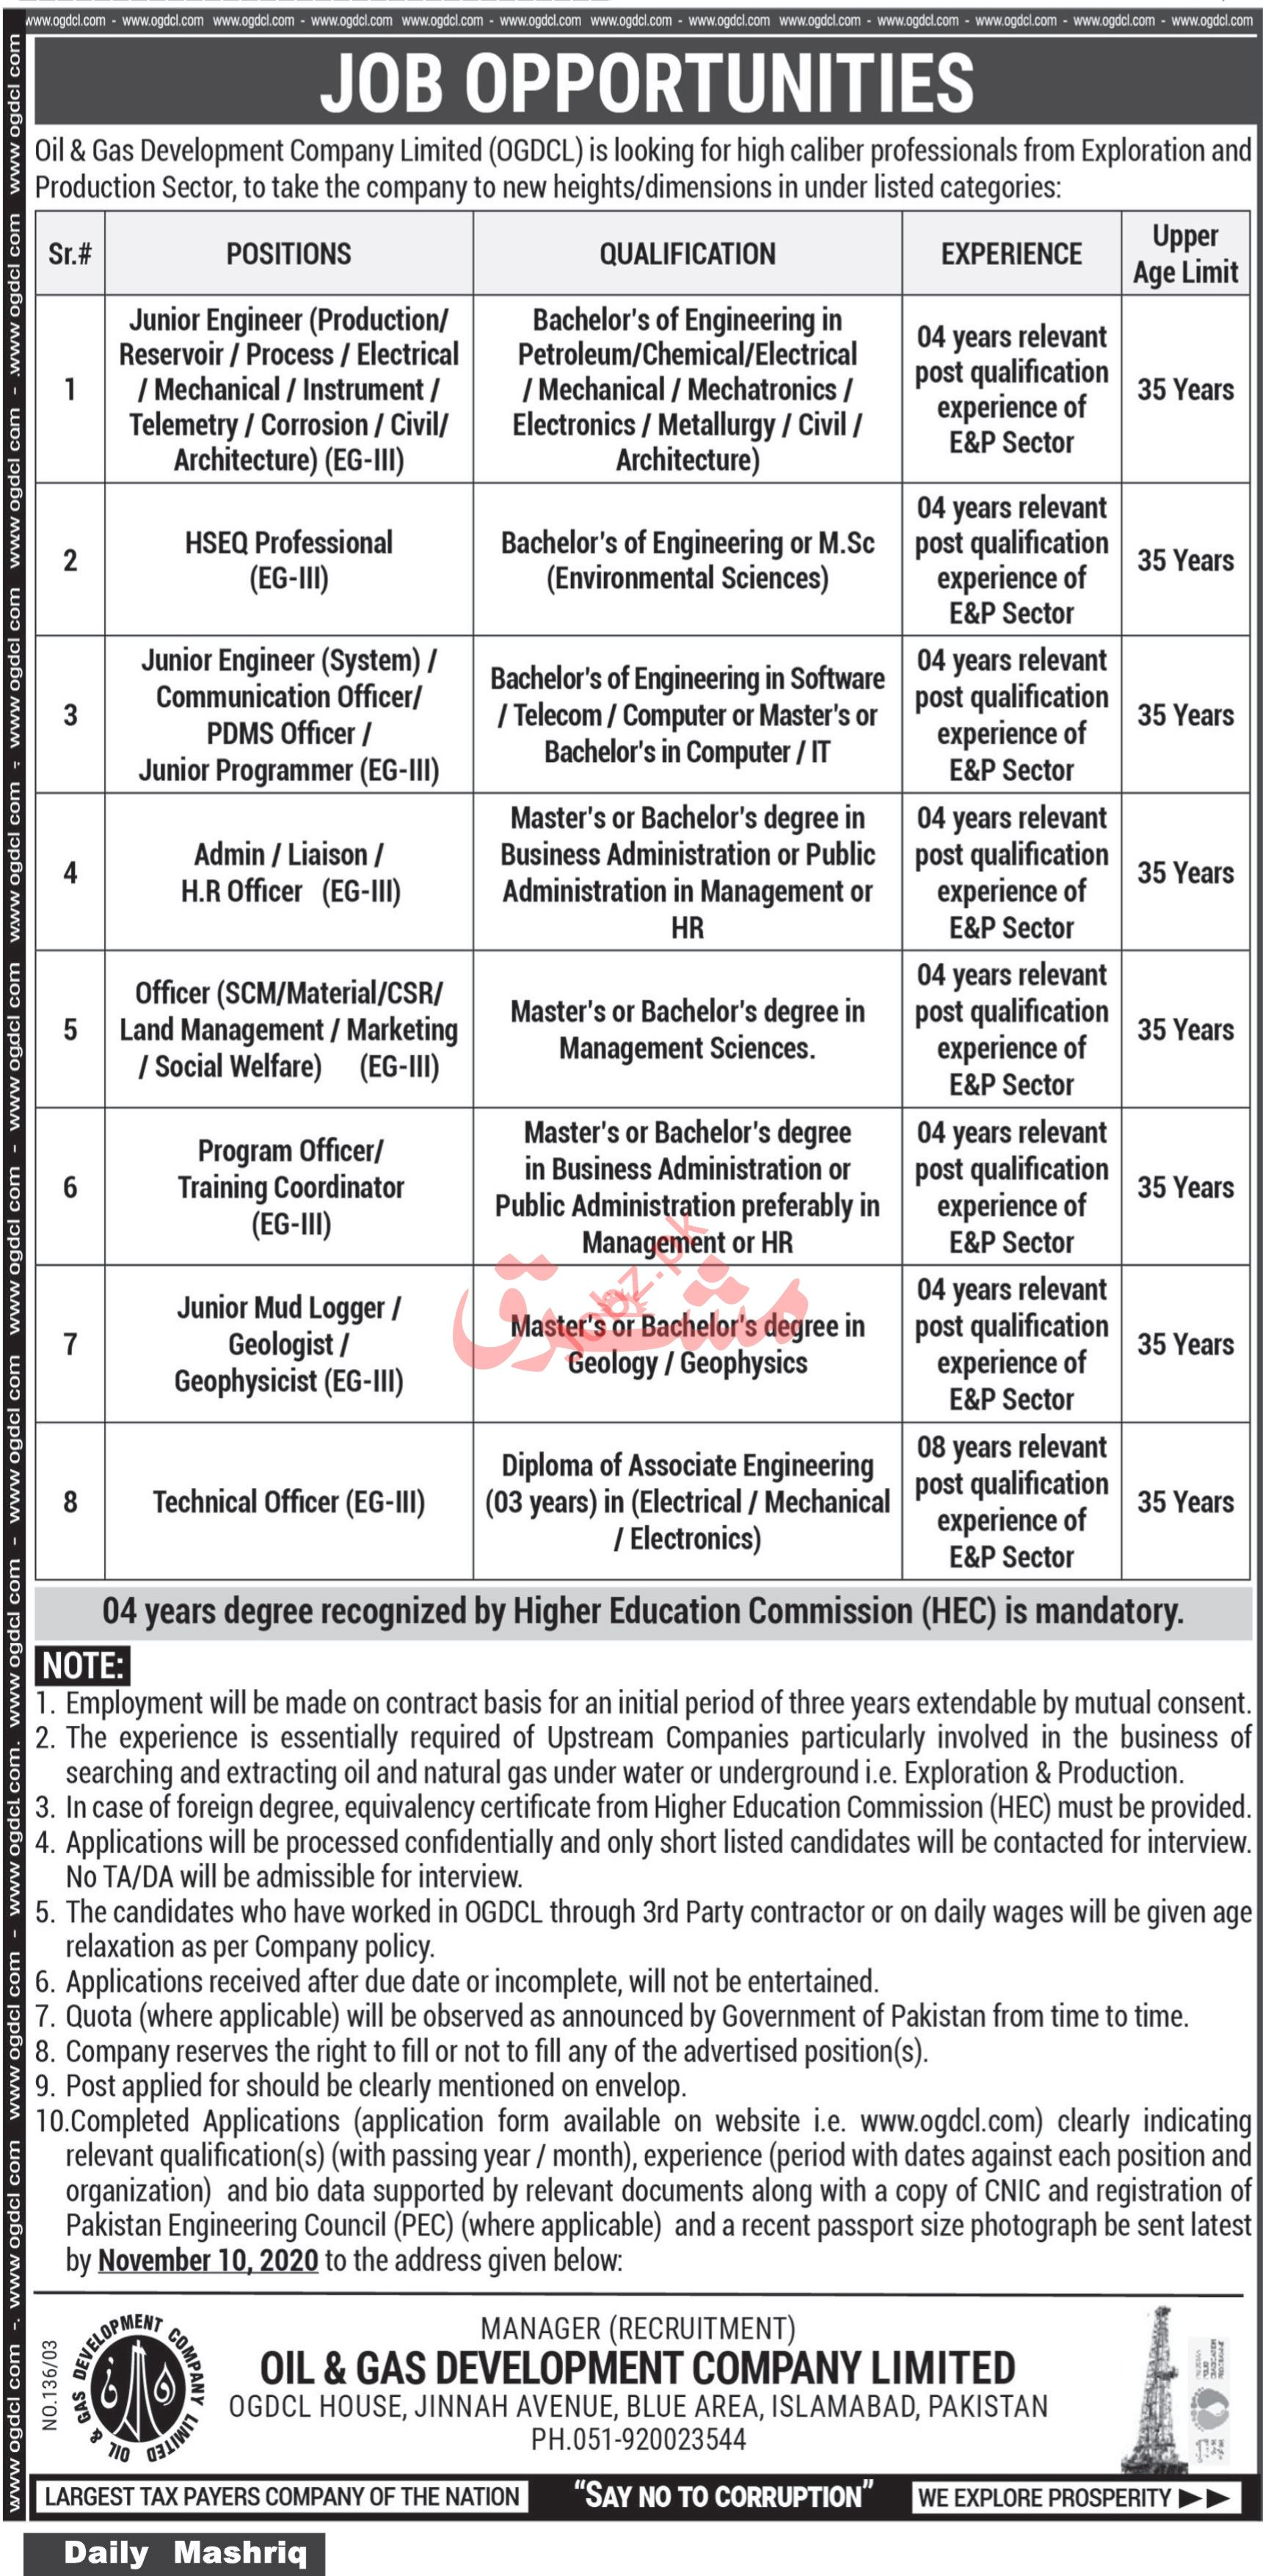 OGDCL Islamabad Jobs 2020 for HSEQ Professional & Engineer